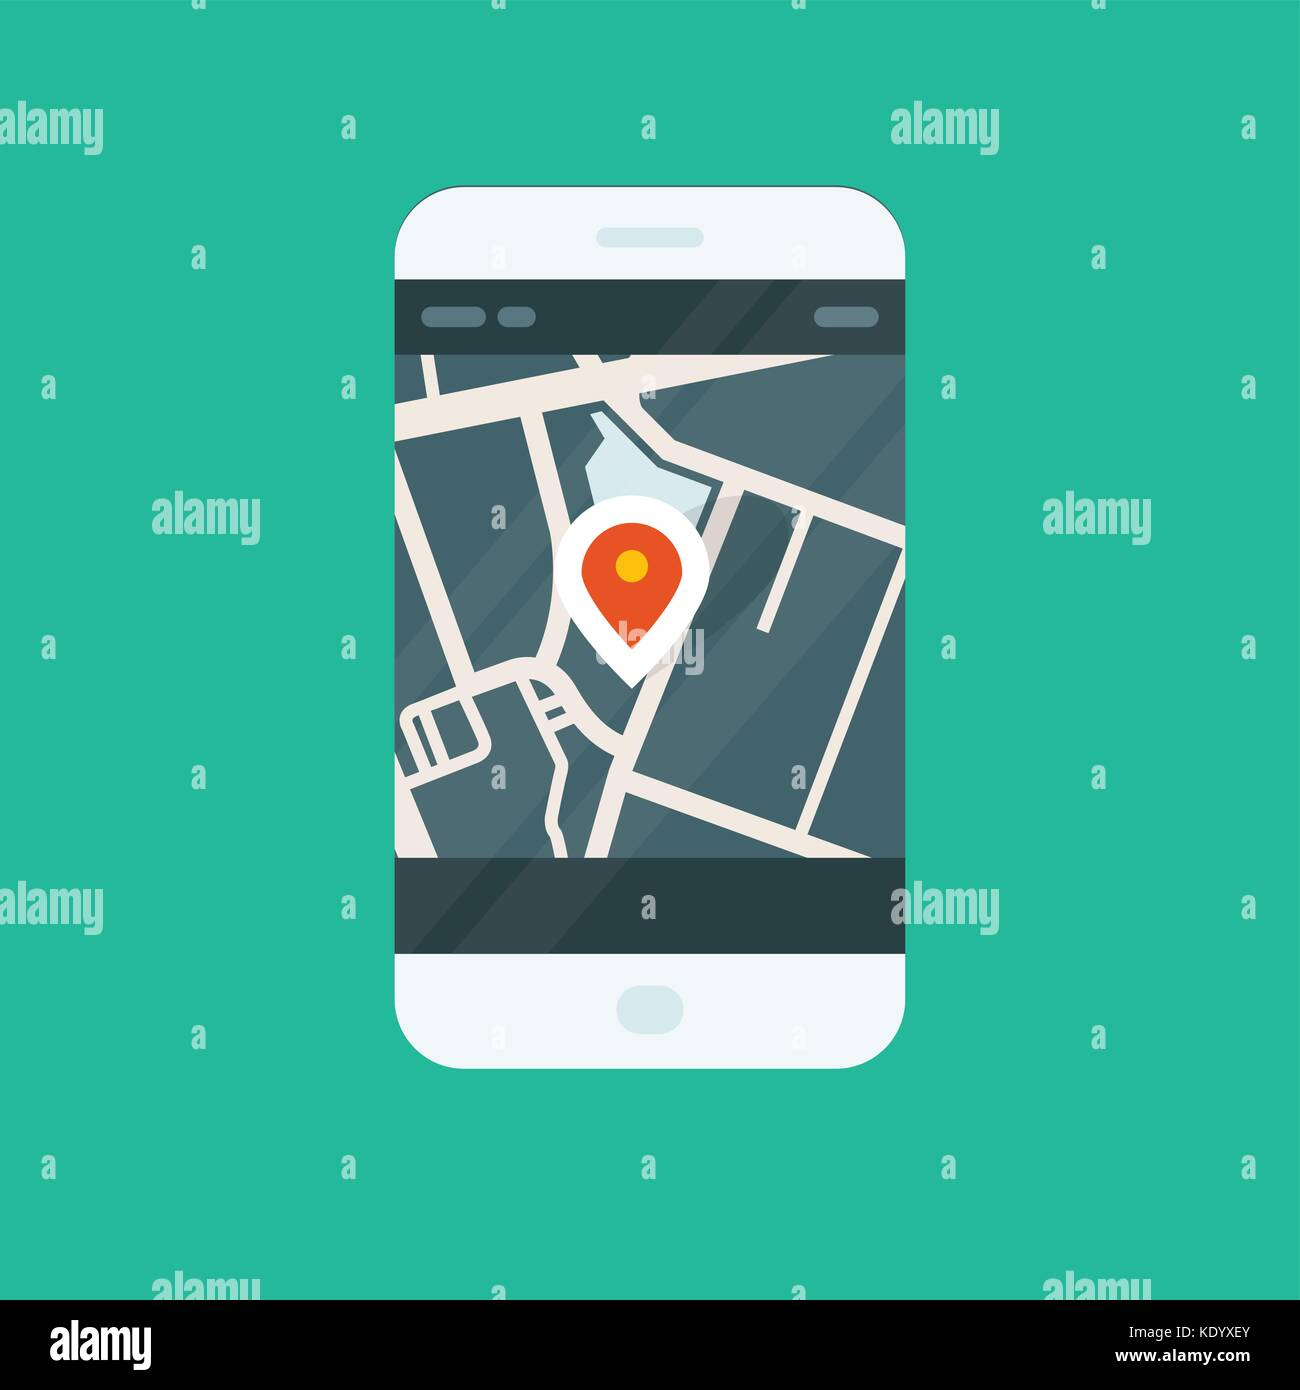 City navigation smartphone app - location on map - Stock Vector